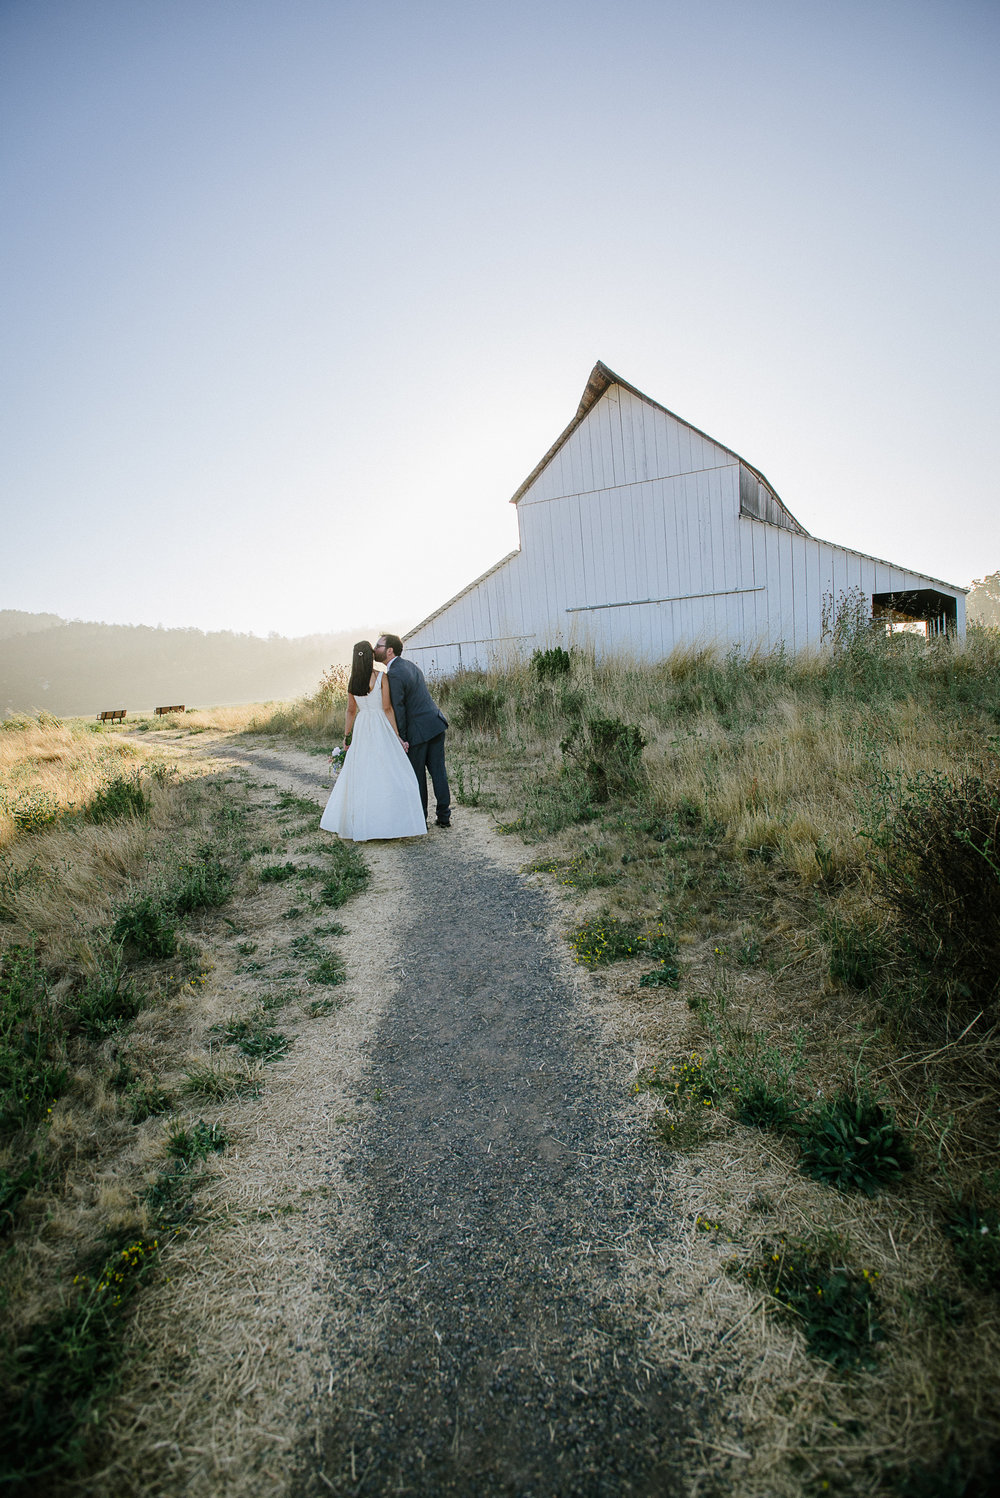 Julia and Matt | Wedding Photography | Dance Palace, Point Reyes, Marin